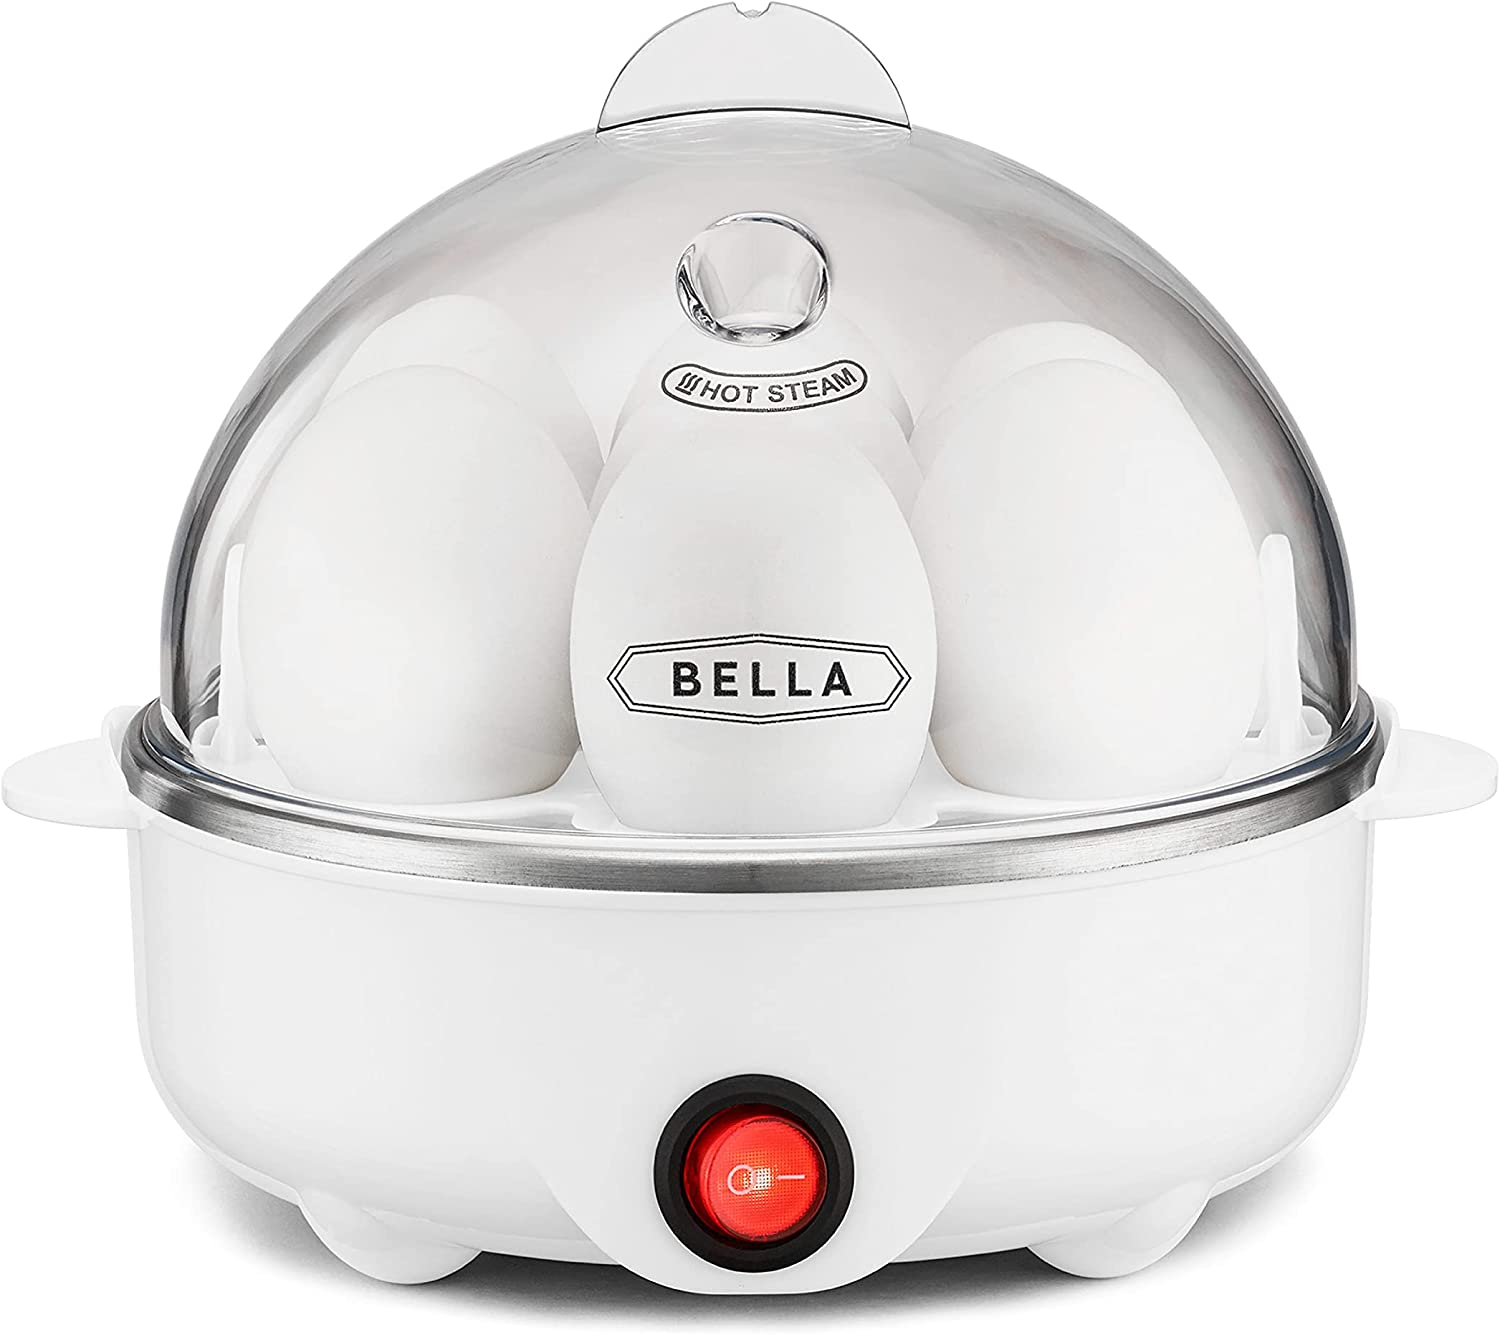 BELLA 17284 Cooker, Rapid Boiler, Poacher Maker Make up to 7 Large Boiled Eggs, Poaching and Omelete Tray included, Single Stack, White